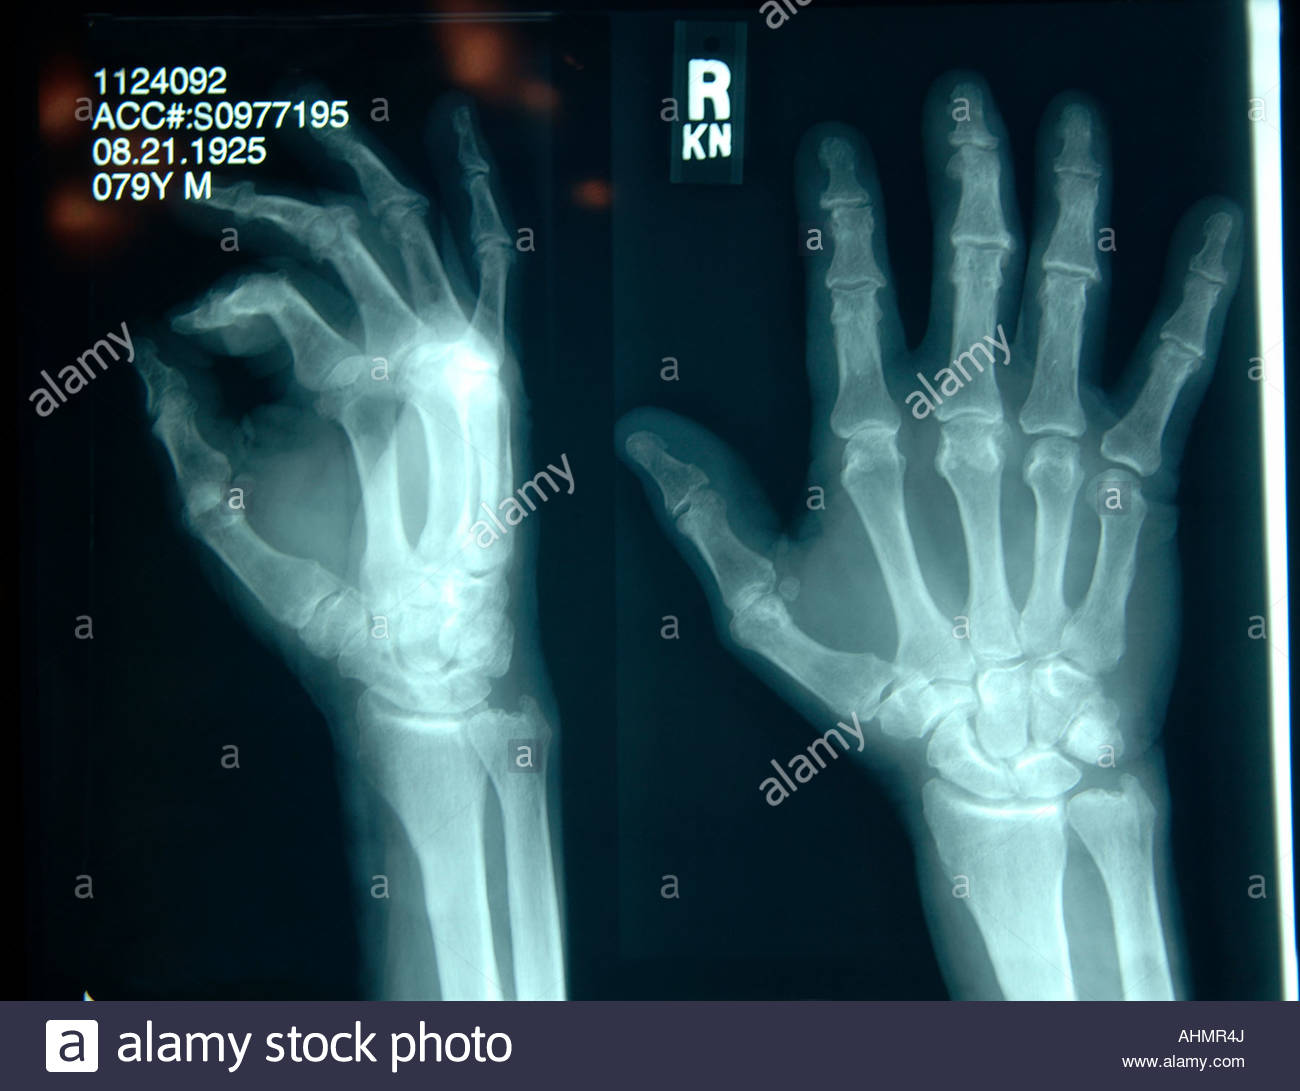 X-rays of hand - Stock Image